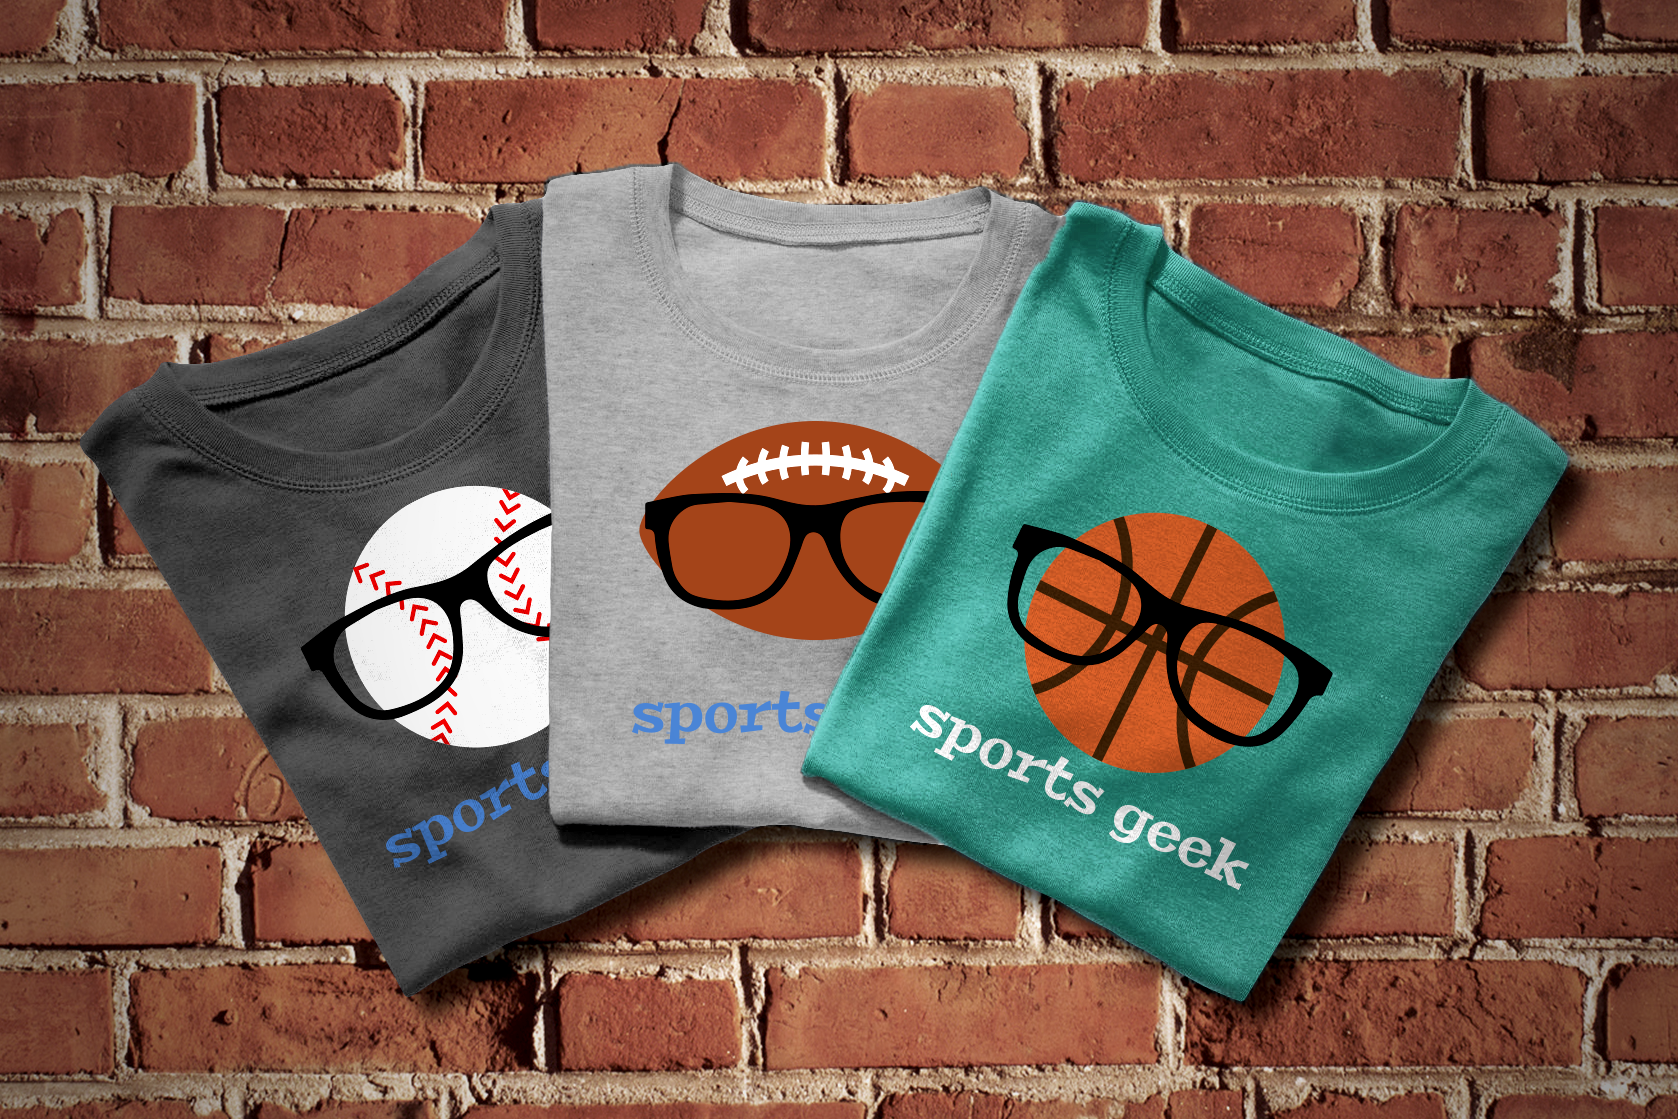 Sports Geek SVG File Cutting Template example image 1